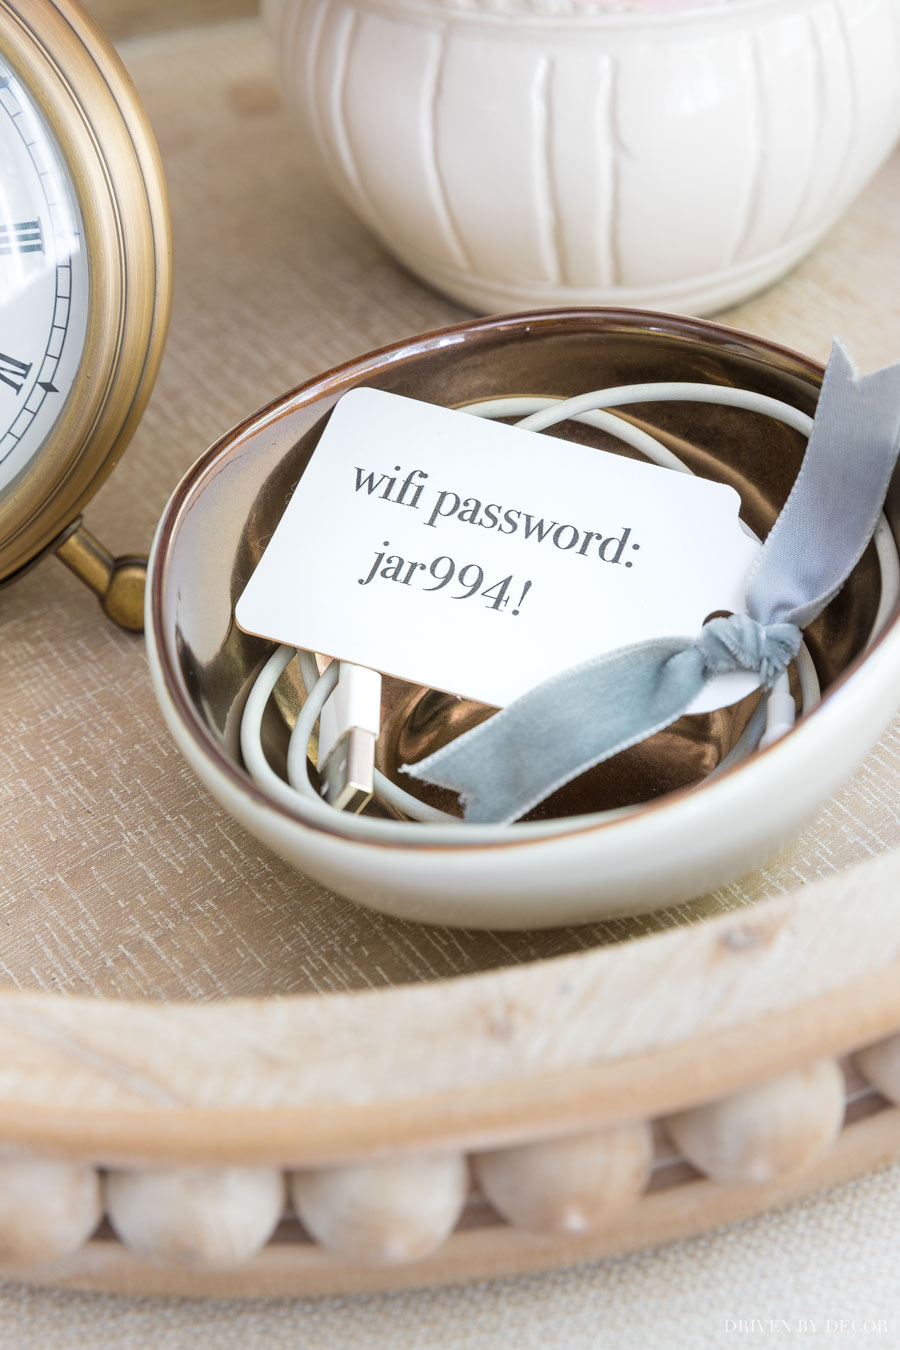 Such a cute and clever way of leaving your wifi password for guests!